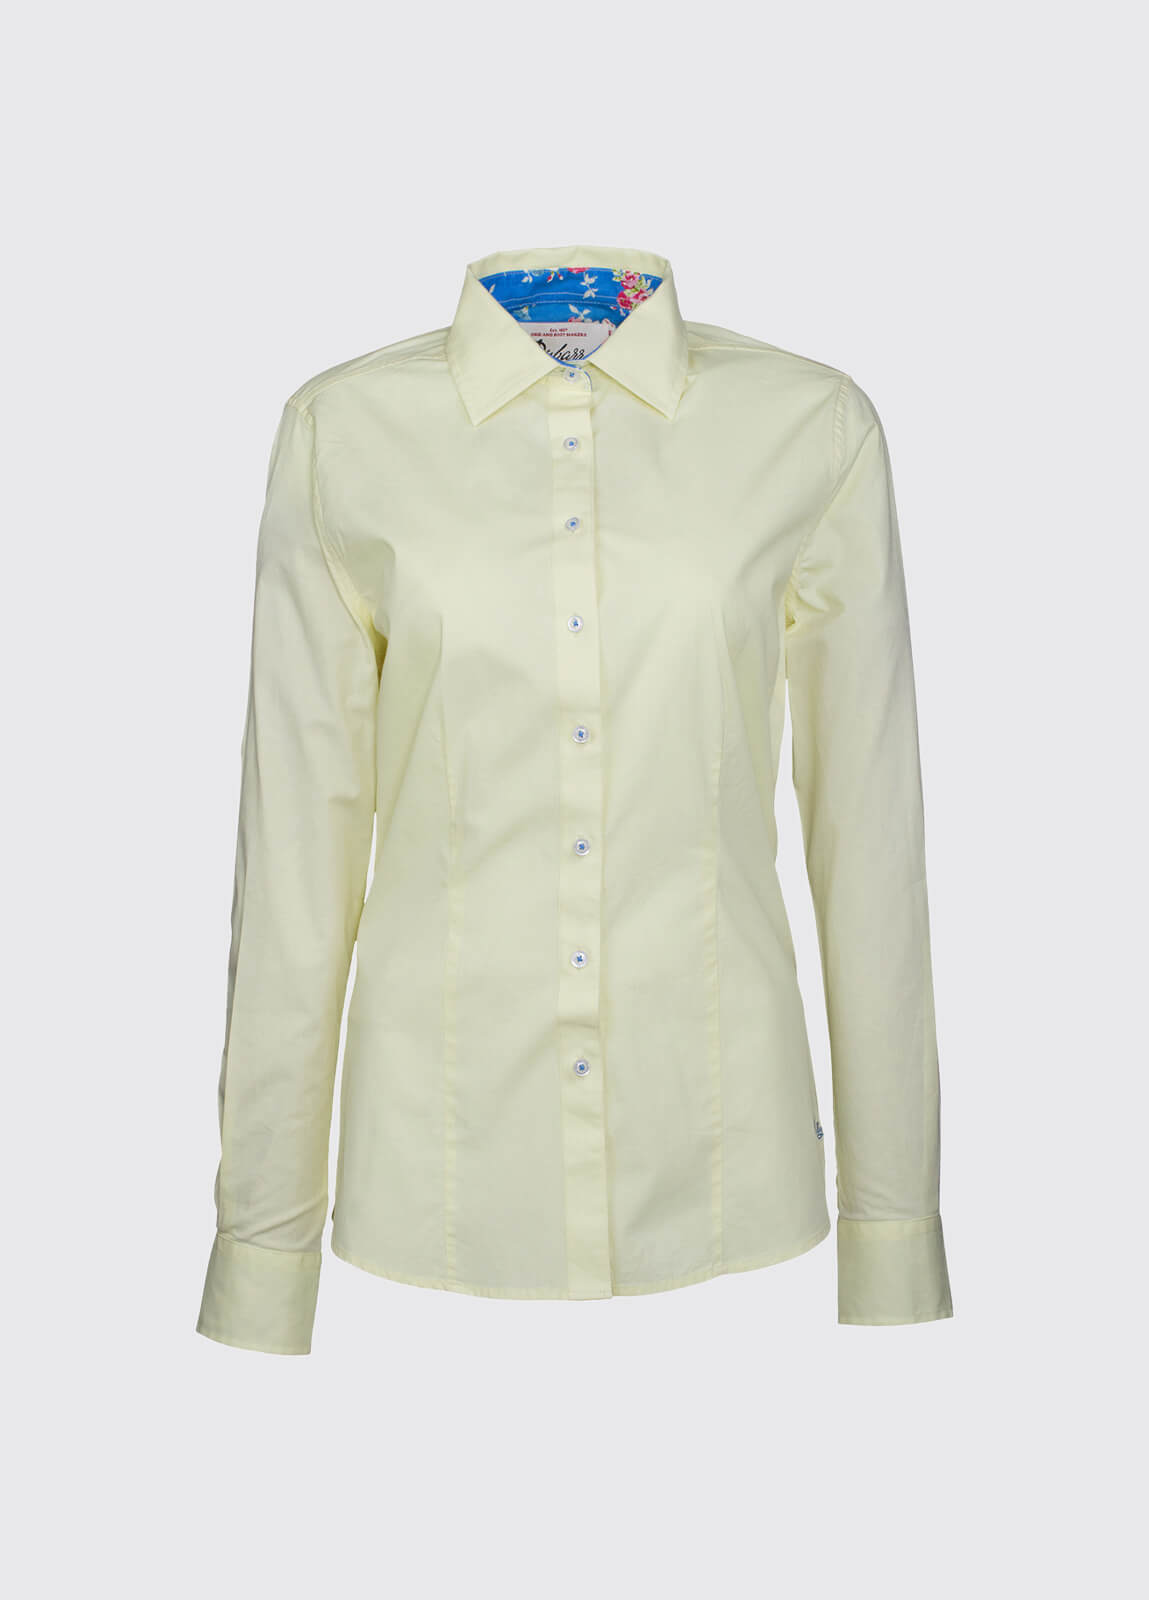 Petunia Floral Trim Shirt - Lemon